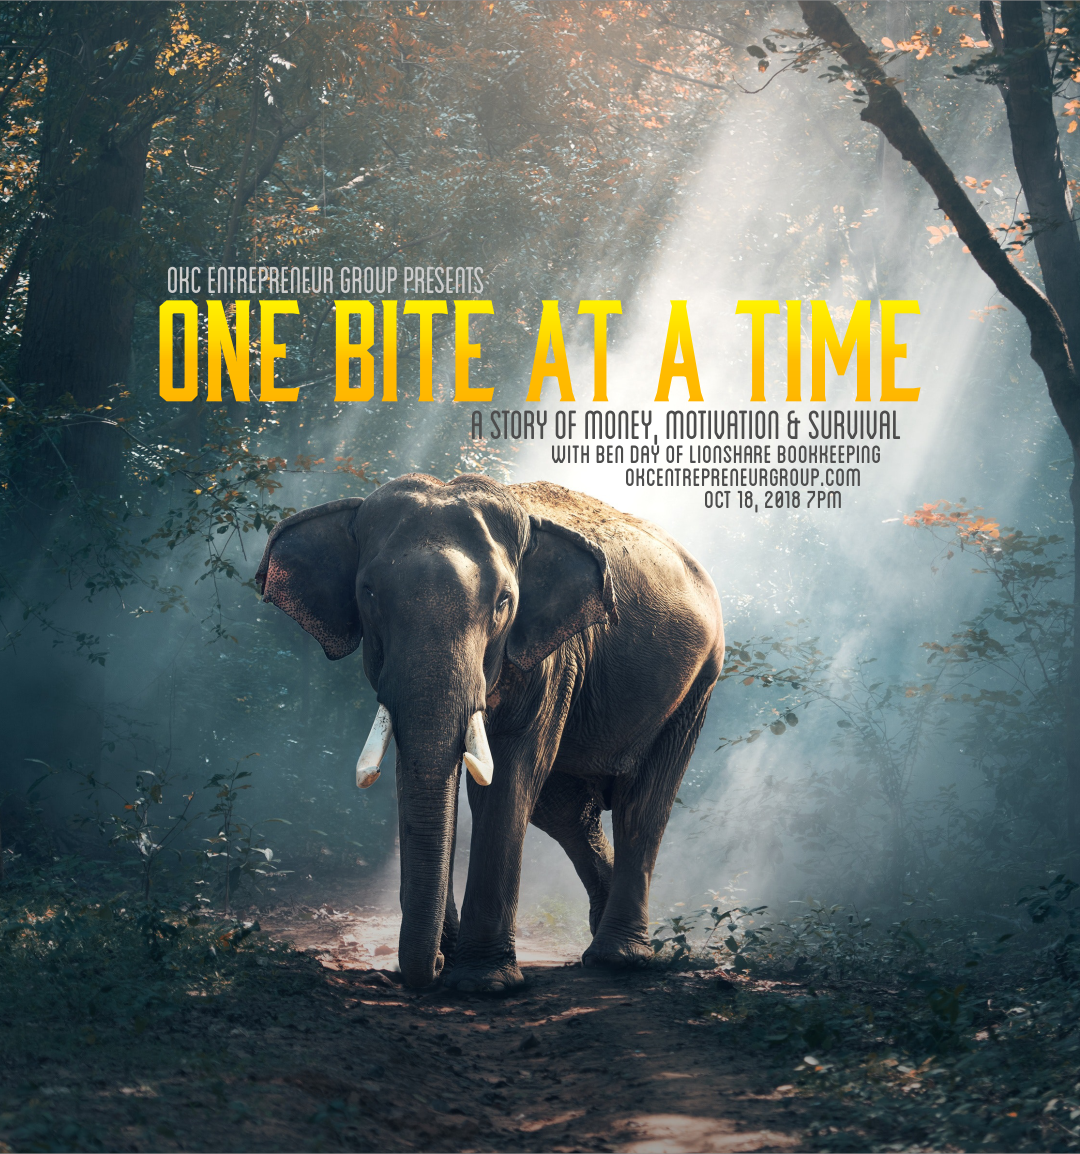 Copy of One Bite At A Time: A Story Money, Motivation & Survival